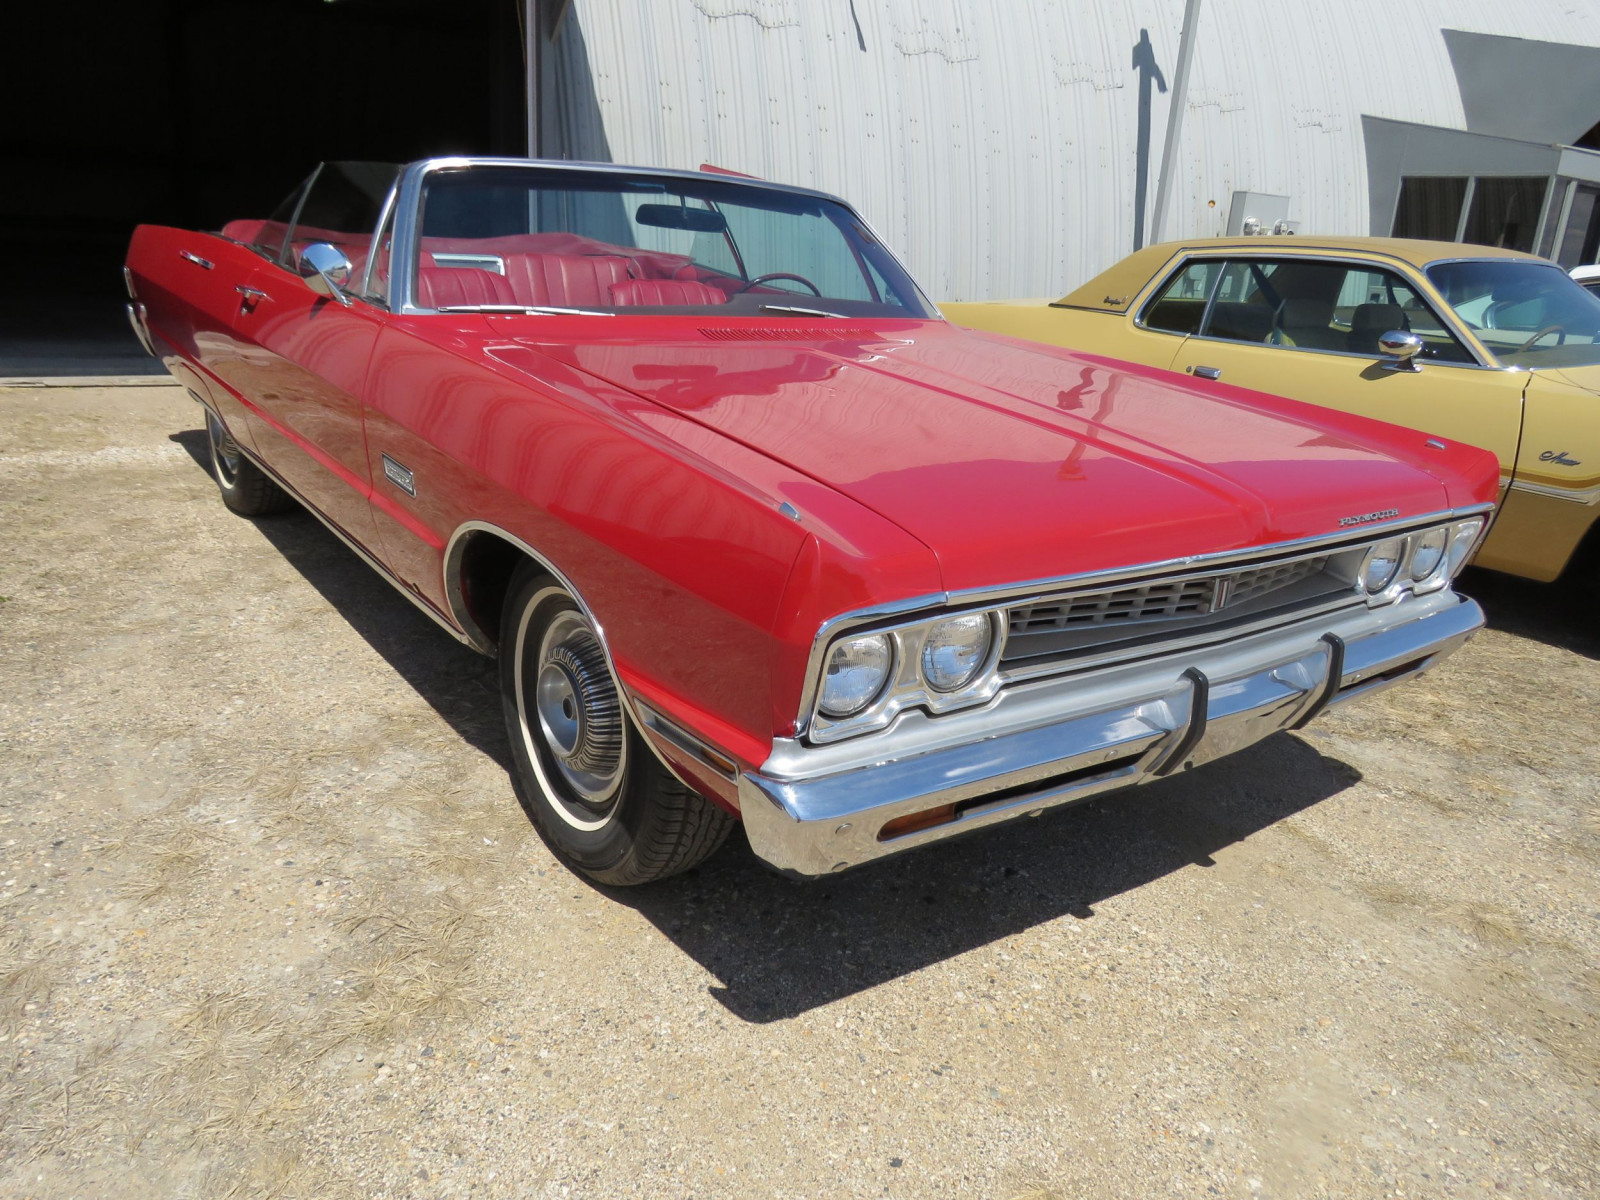 1969 Plymouth Sport Fury Convertible - Image 8